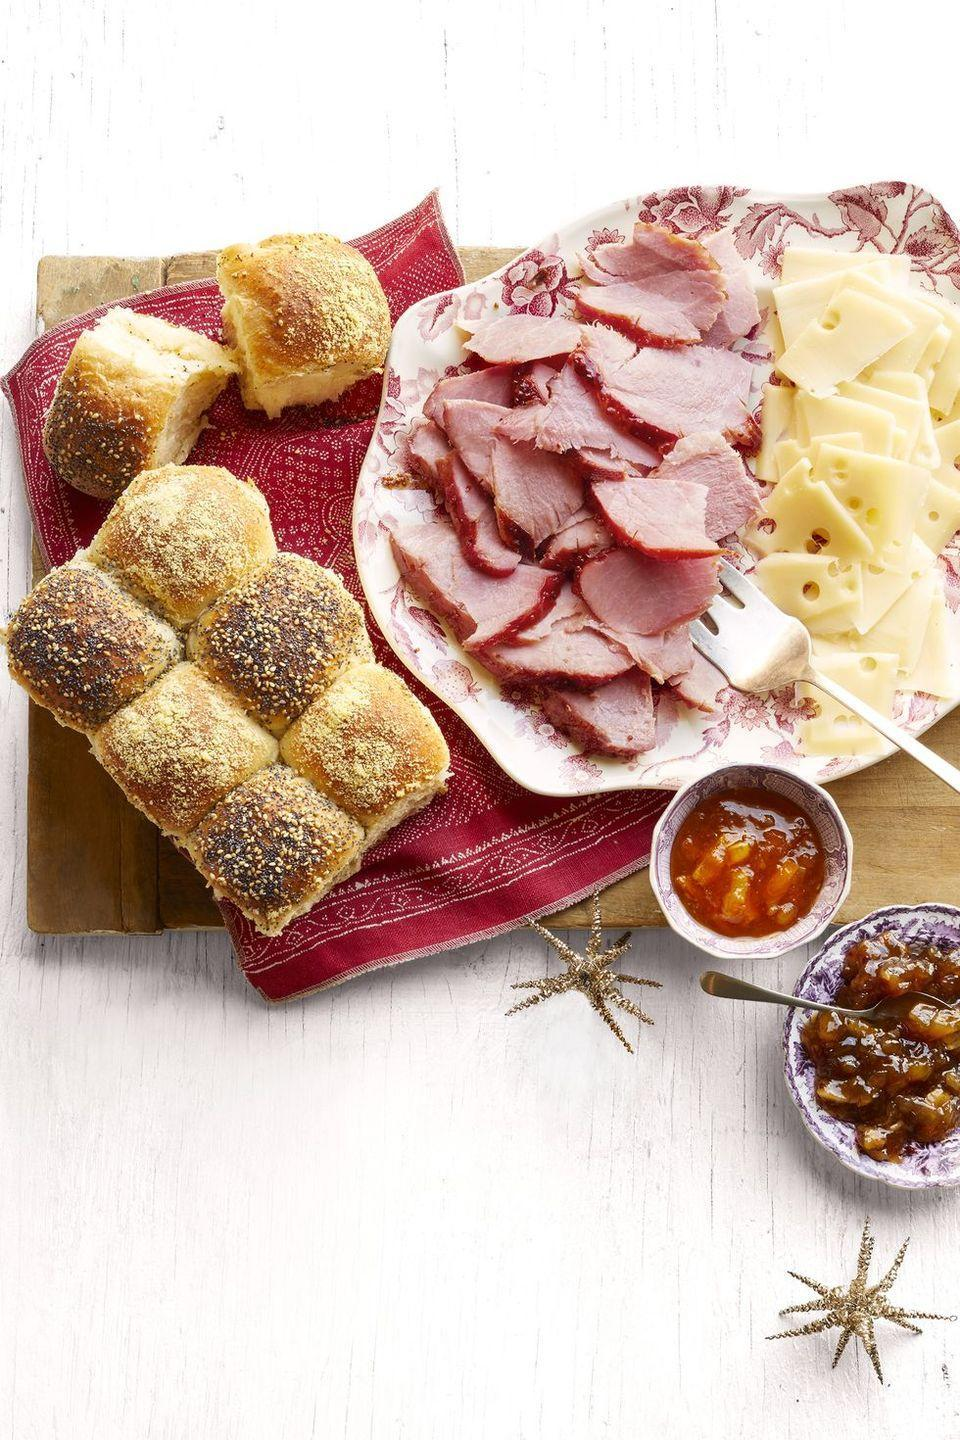 """<p>If you're hosting an Easter brunch or lunch, this ham and Swiss sandwich platter is a great option.</p><p><a href=""""https://www.thepioneerwoman.com/food-cooking/recipes/a34271871/honey-glazed-ham-and-checkerboard-rolls-recipe/"""" rel=""""nofollow noopener"""" target=""""_blank"""" data-ylk=""""slk:Get the recipe."""" class=""""link rapid-noclick-resp""""><strong>Get the recipe.</strong></a></p><p><a class=""""link rapid-noclick-resp"""" href=""""https://go.redirectingat.com?id=74968X1596630&url=https%3A%2F%2Fwww.walmart.com%2Fsearch%2F%3Fquery%3Dserving%2Bplatters&sref=https%3A%2F%2Fwww.thepioneerwoman.com%2Ffood-cooking%2Fmeals-menus%2Fg35585877%2Feaster-recipes%2F"""" rel=""""nofollow noopener"""" target=""""_blank"""" data-ylk=""""slk:SHOP SERVING PLATTERS"""">SHOP SERVING PLATTERS</a></p>"""